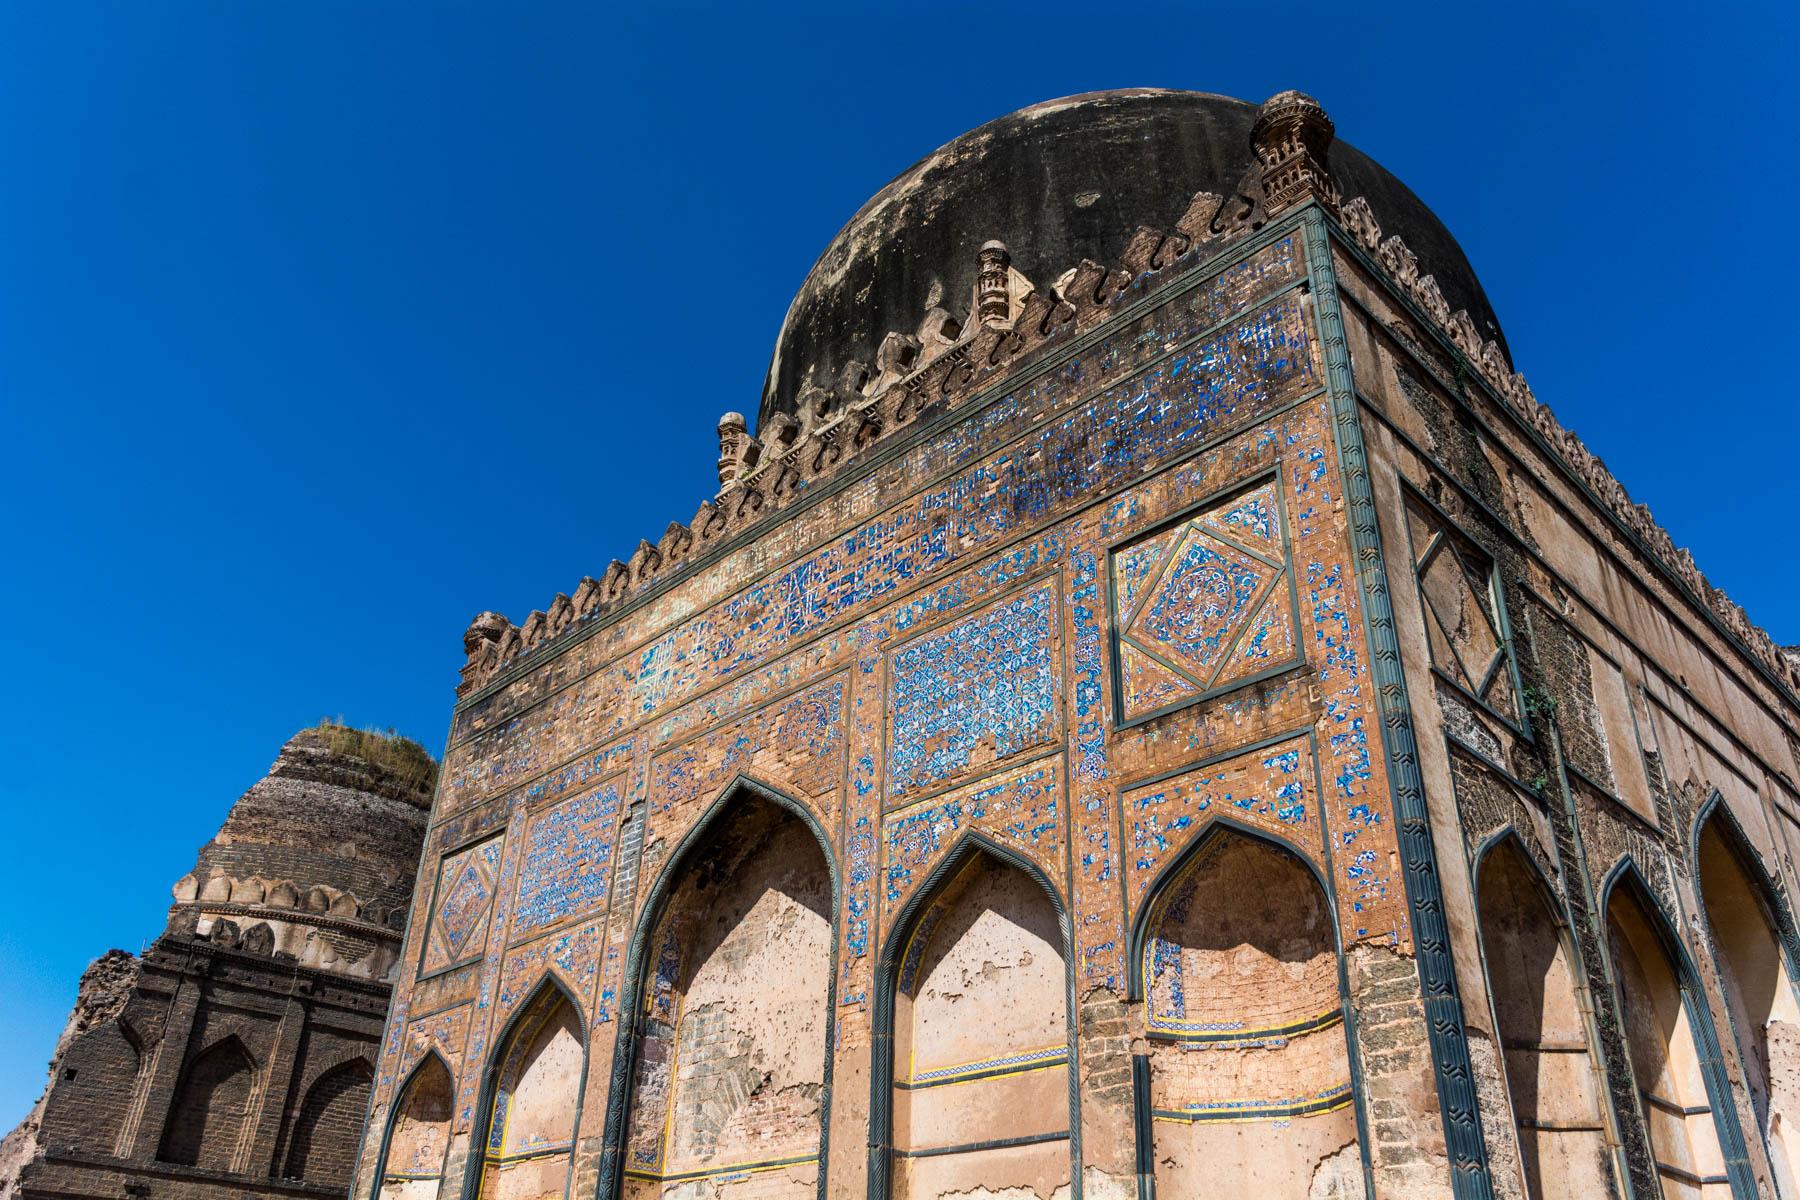 Off the beaten track places to visit in Karnataka, India - Bahamani tombs in Bidar, India - Lost With Purpose